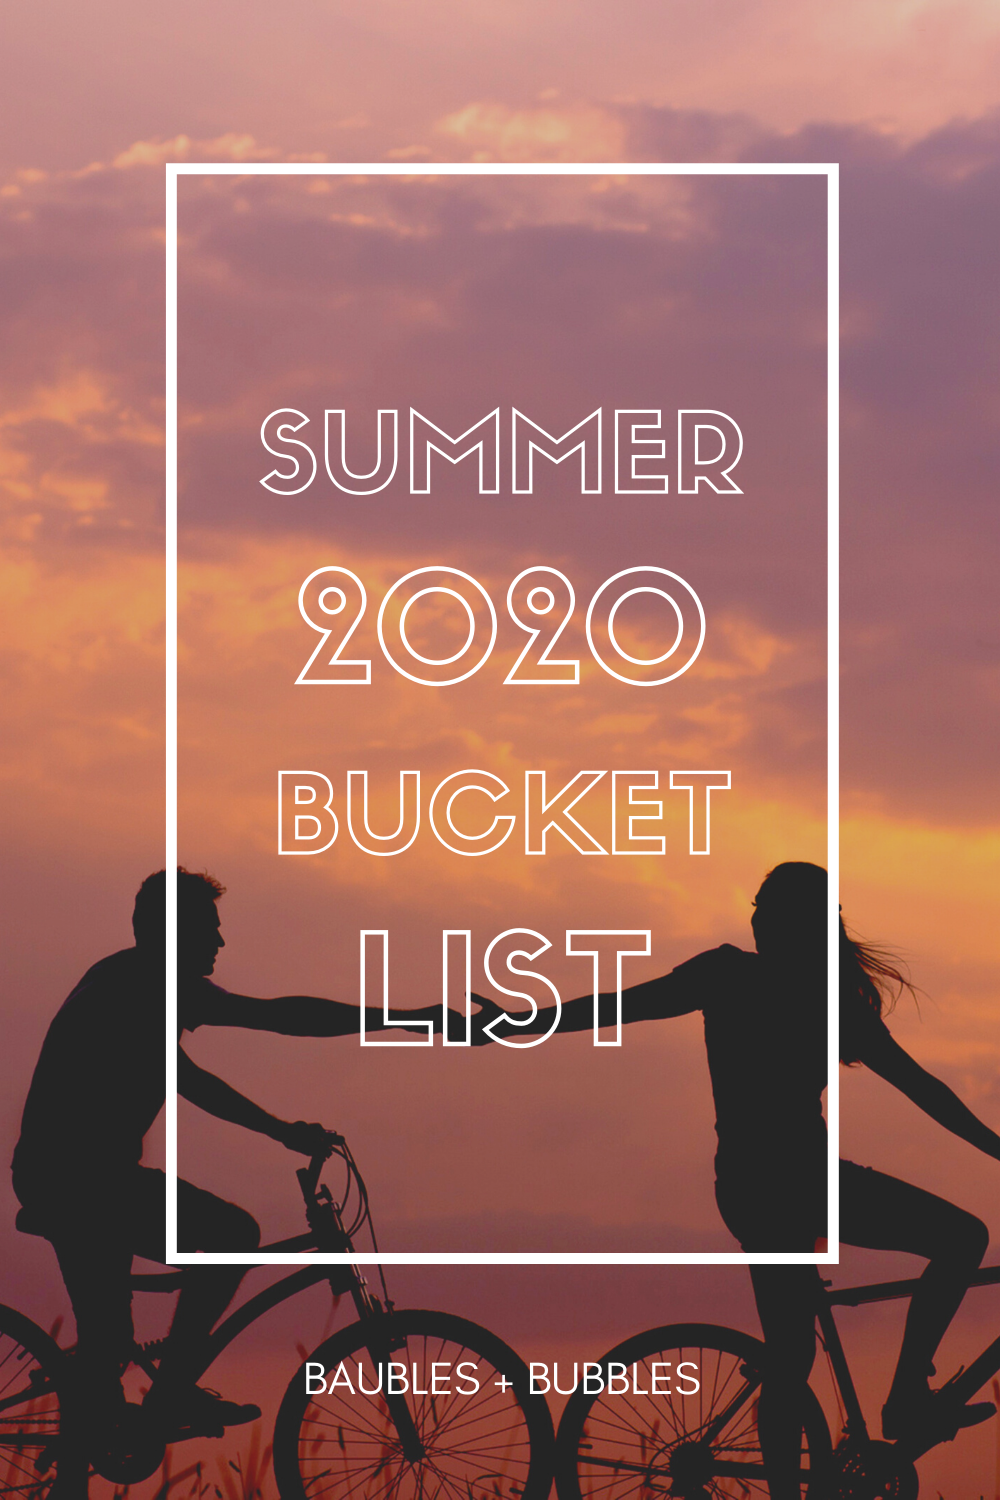 Summer 2020 Bucket List - Baubles + Bubbles